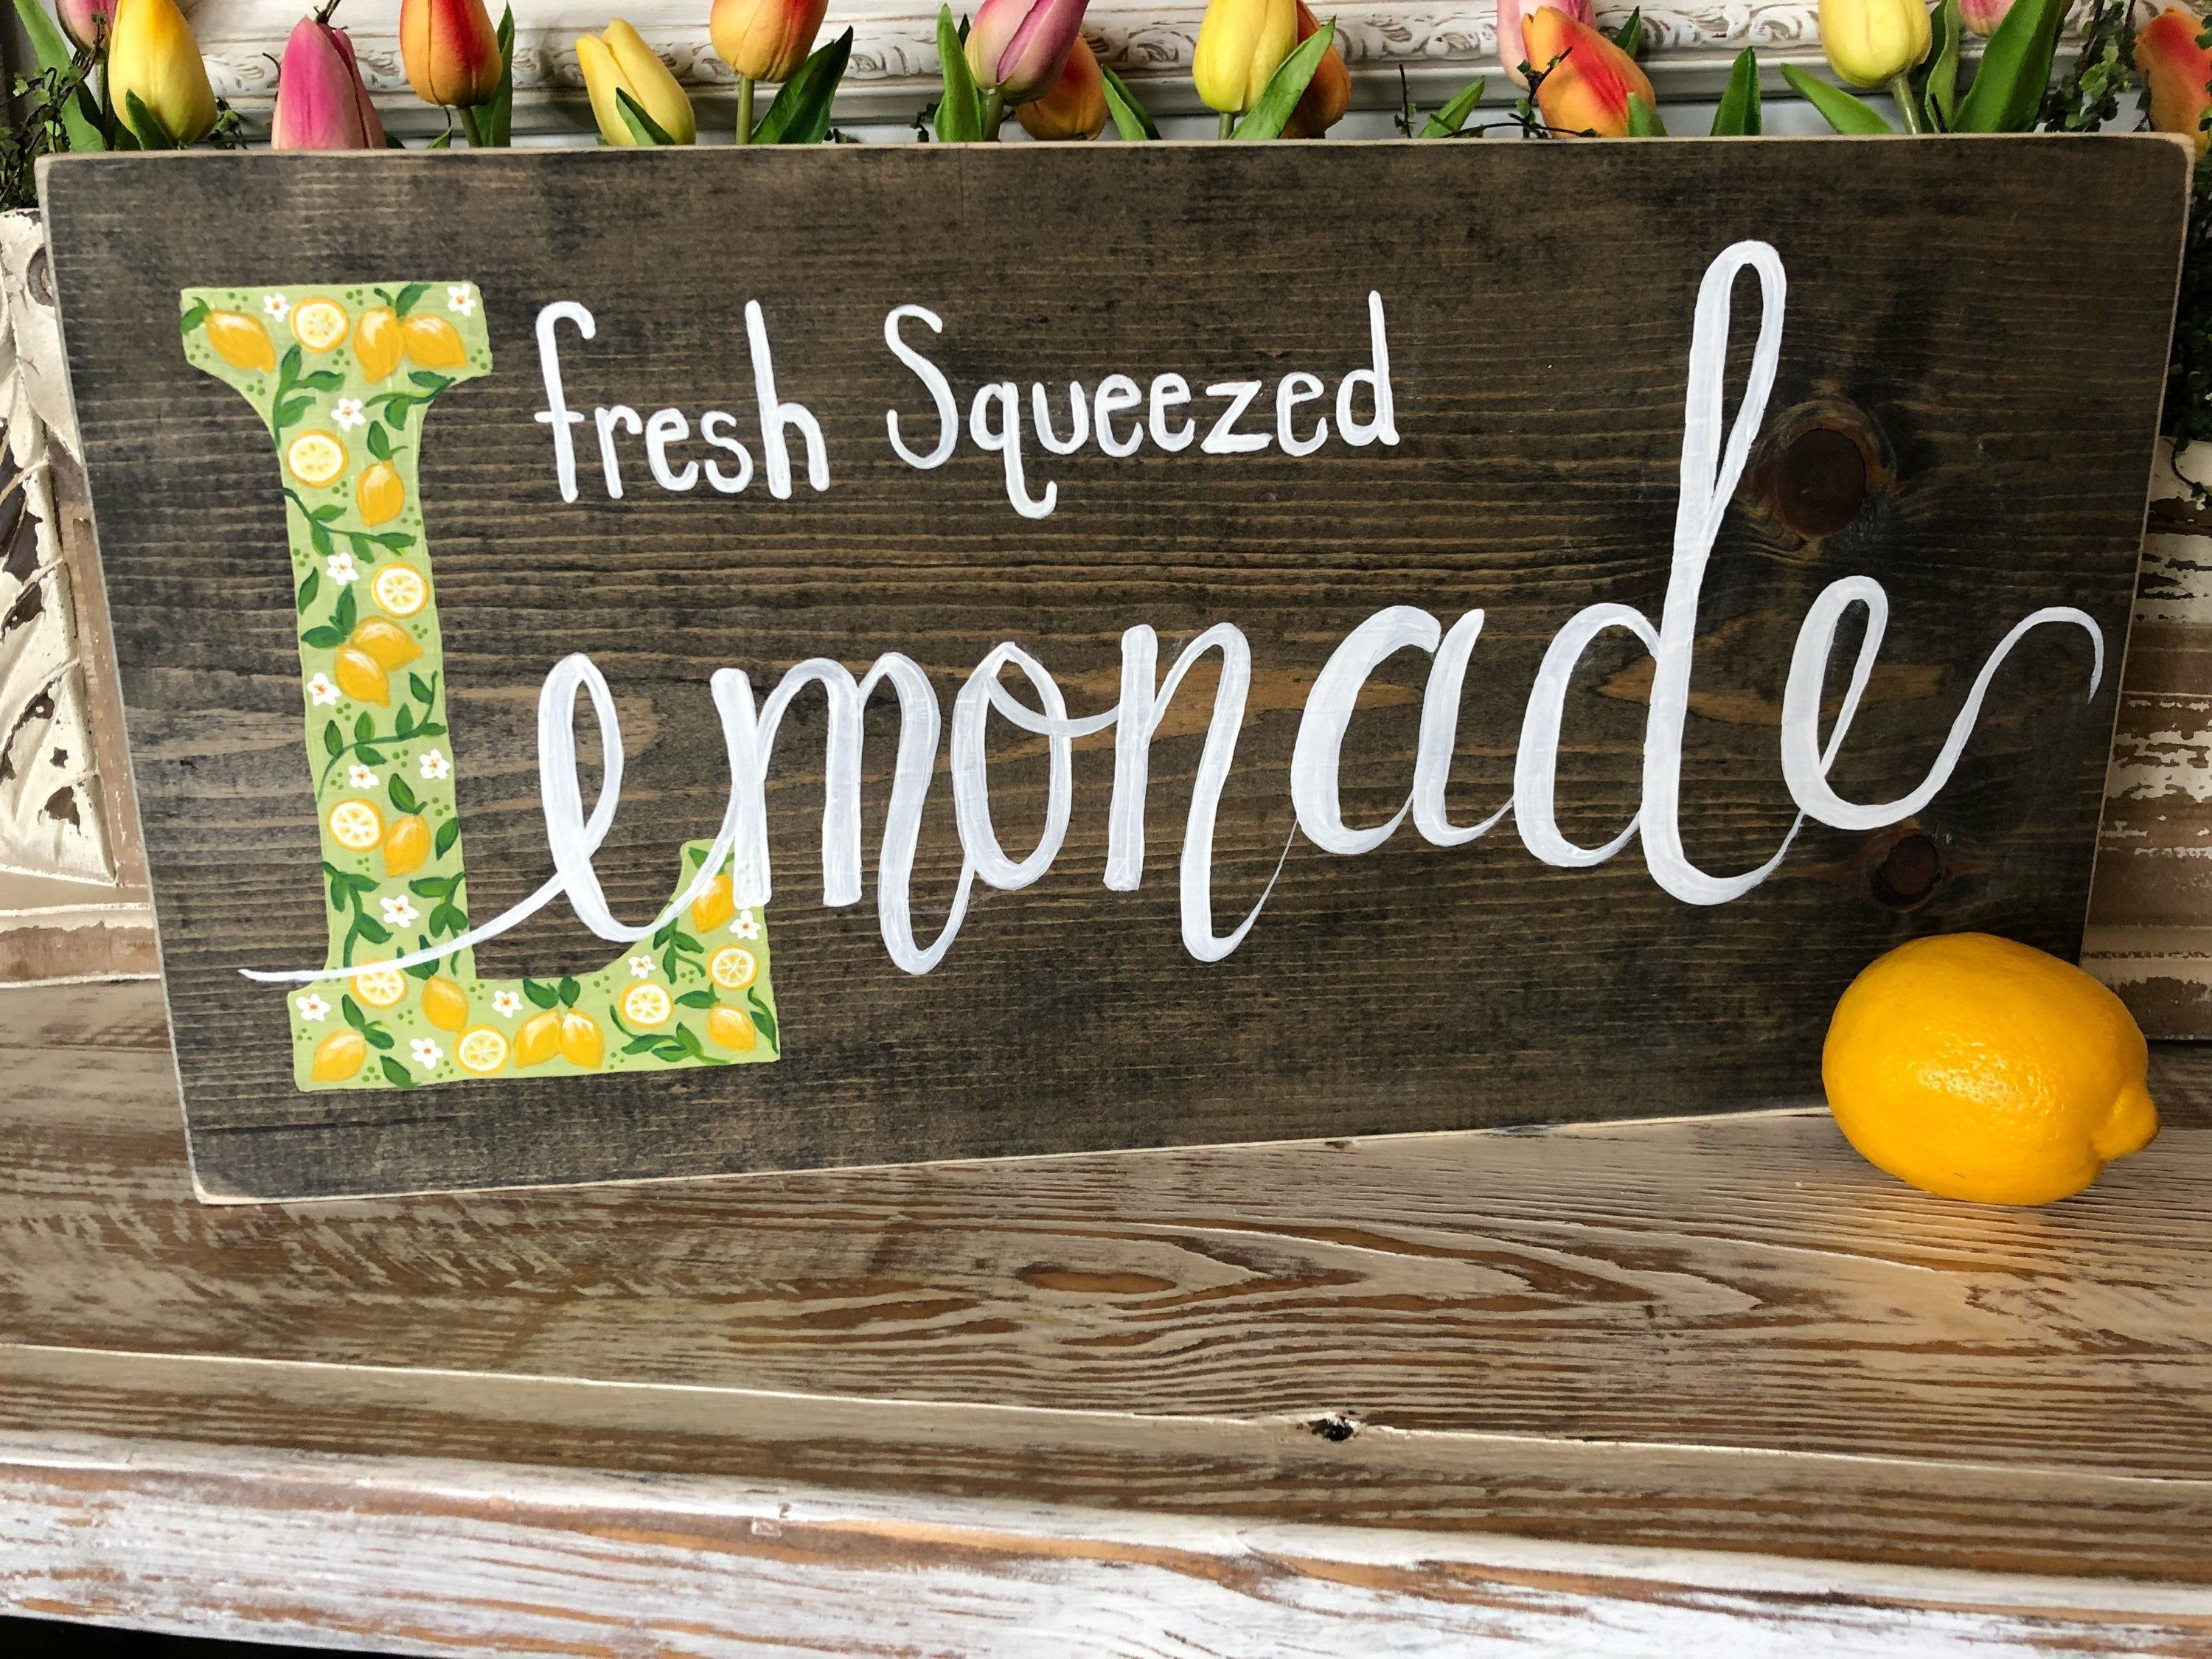 Fresh squeezed lemonade sign, handlettered sign, lemonade sign, wood sign #freshsqueezedlemonade Fresh squeezed lemonade sign, handlettered sign, lemonade sign, wood sign #freshsqueezedlemonade Fresh squeezed lemonade sign, handlettered sign, lemonade sign, wood sign #freshsqueezedlemonade Fresh squeezed lemonade sign, handlettered sign, lemonade sign, wood sign #freshsqueezedlemonade